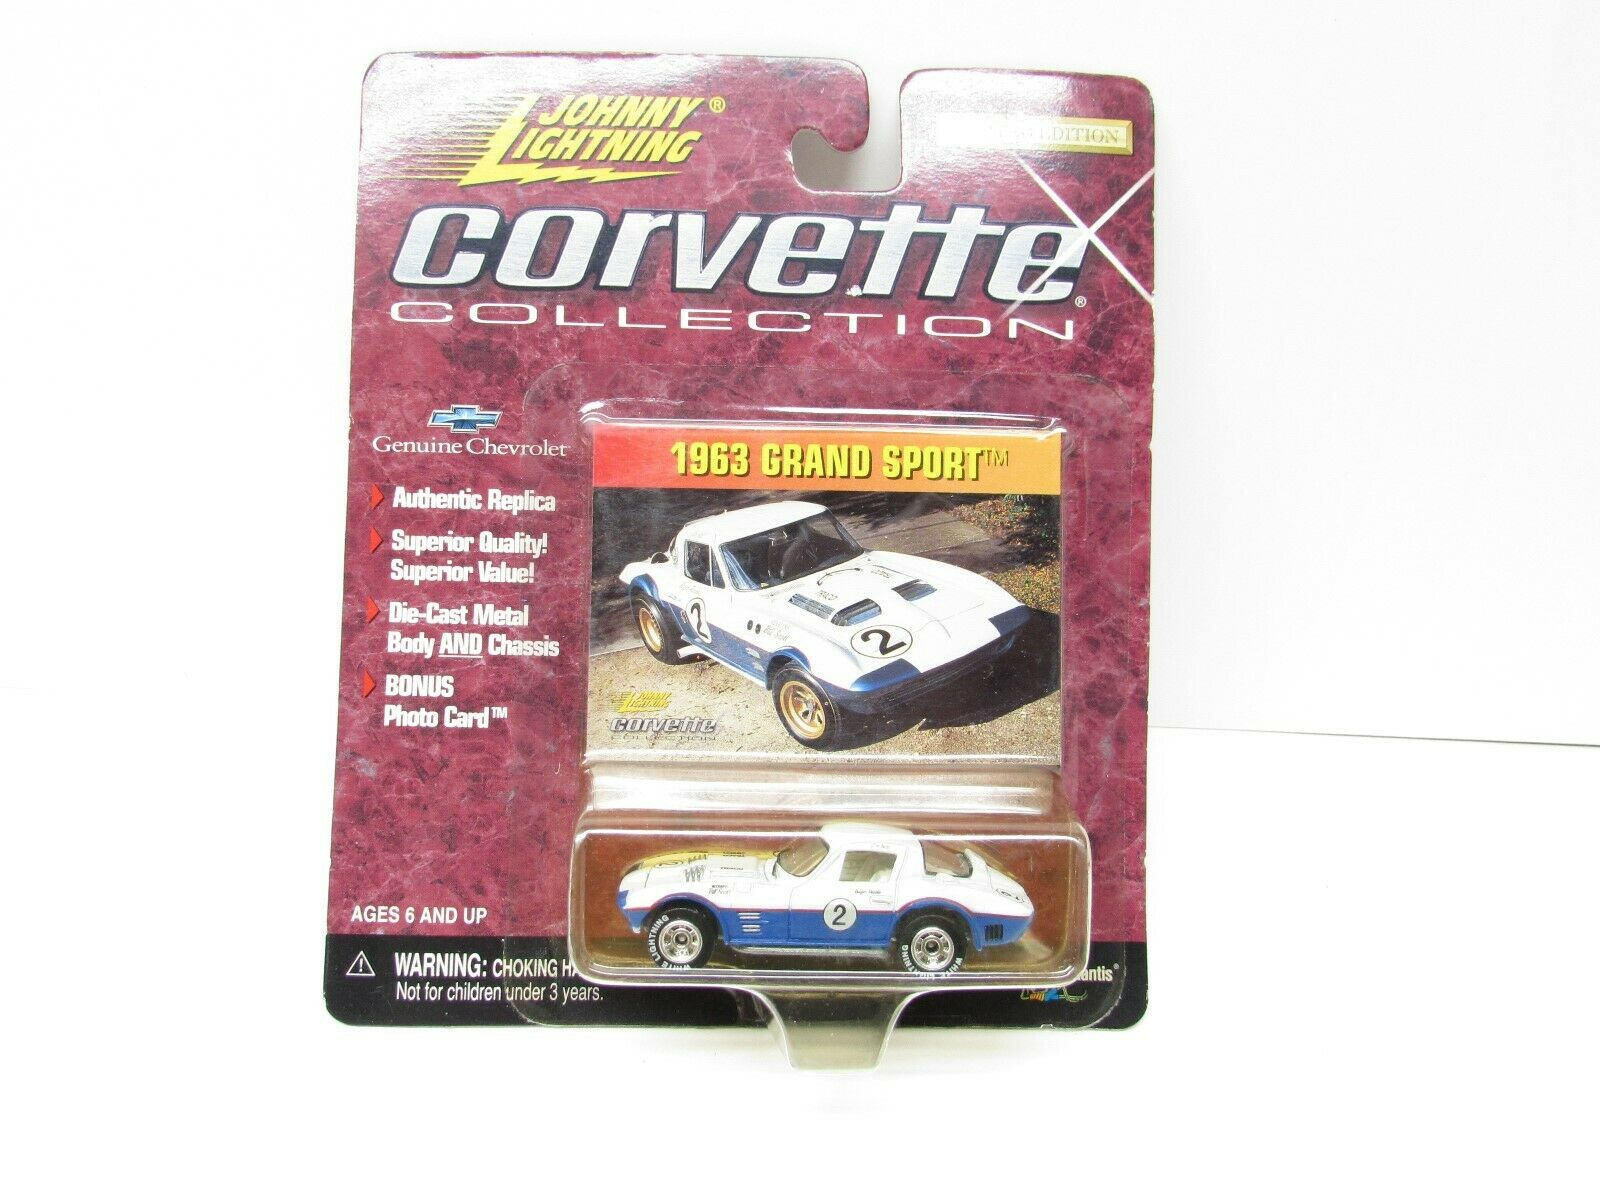 63 Grand Sport Corvette Collection With Weiß Lightning Tires Johnny Lightning